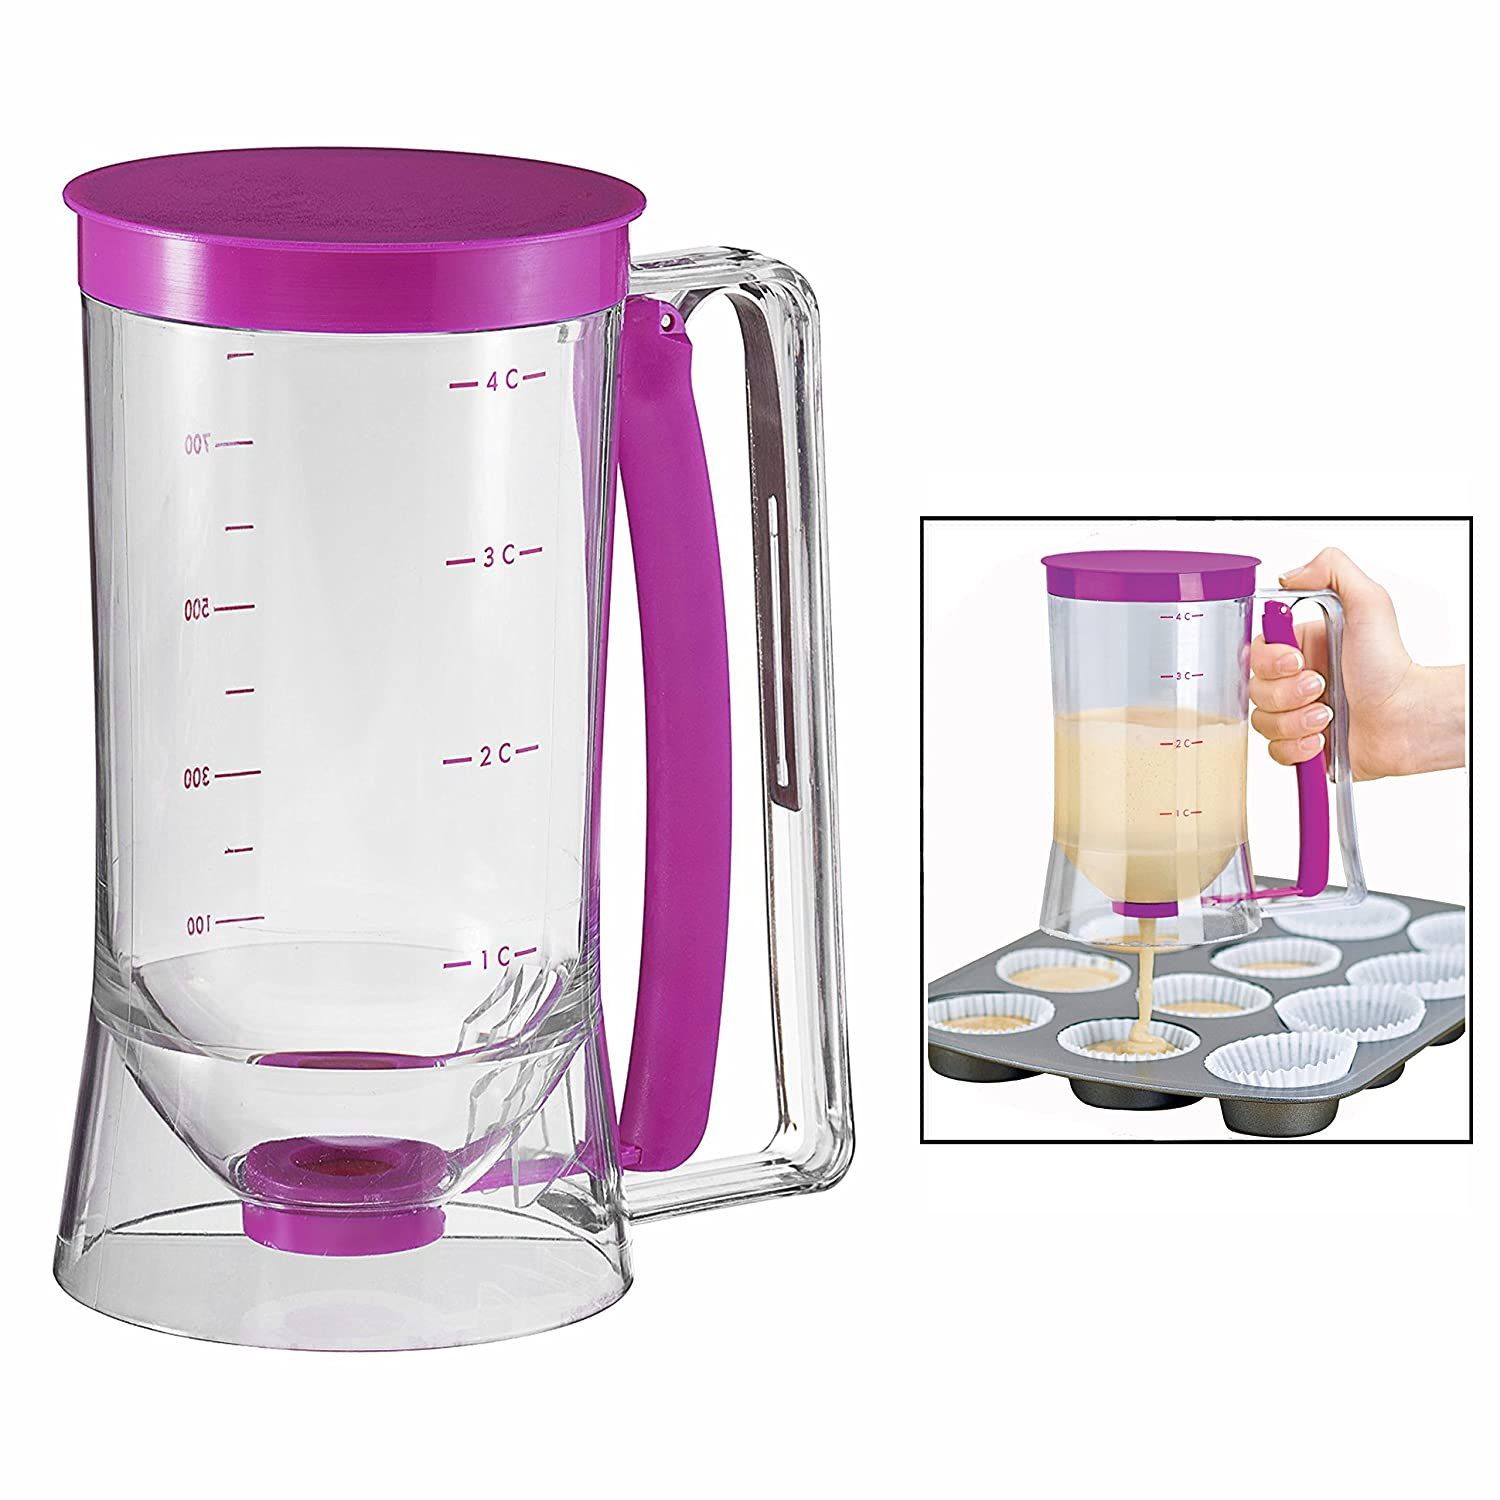 OFKP® Cake Batter Dispenser for baking 4 cup capacity 900 ML